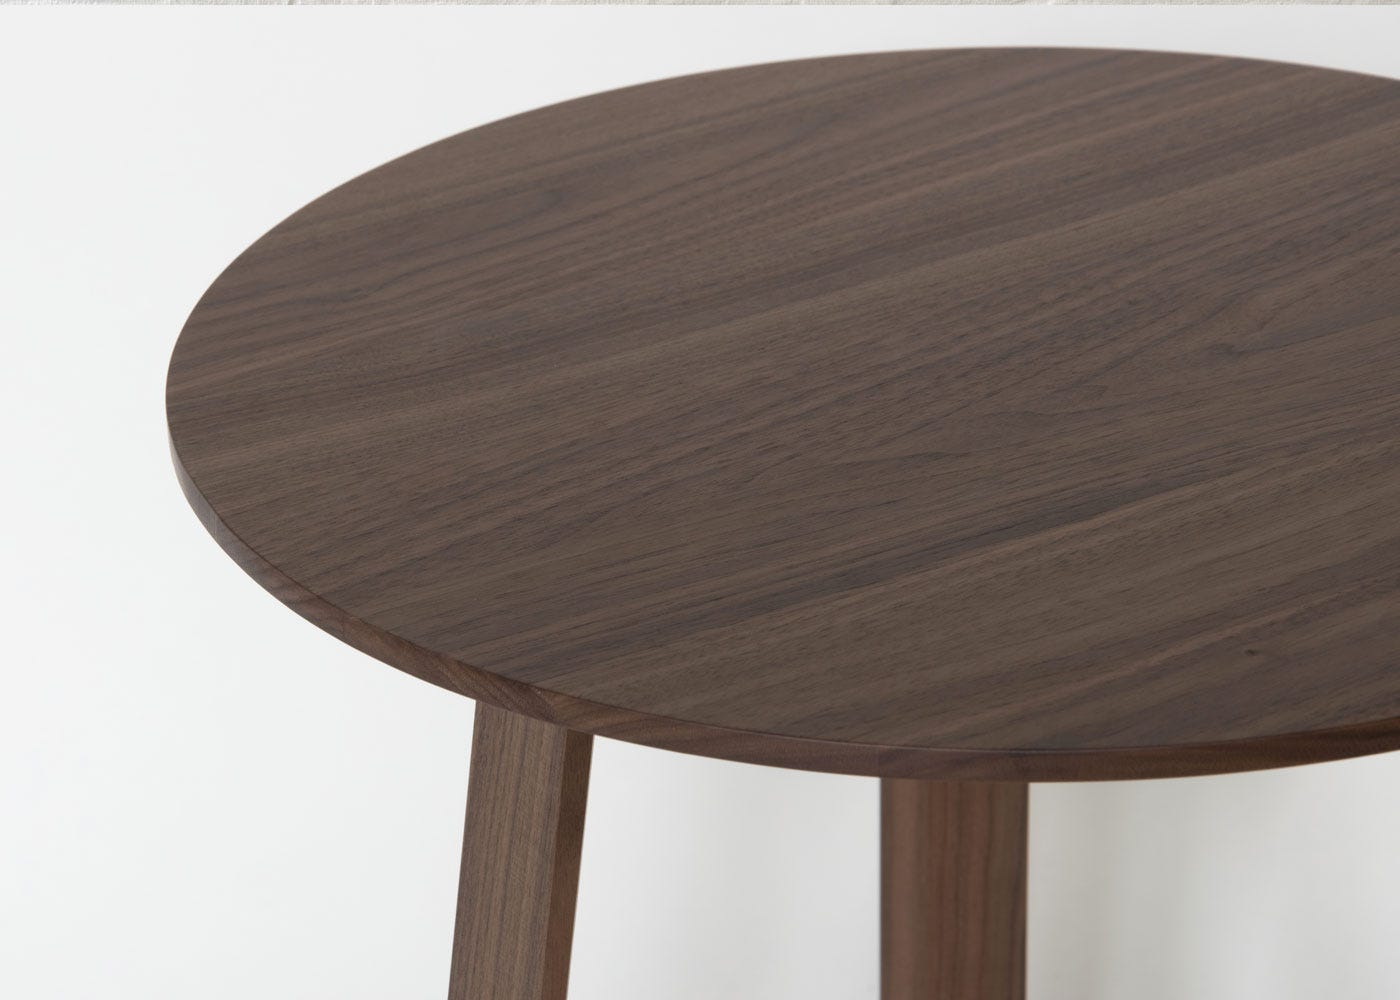 As shown: Solid walnut table top.